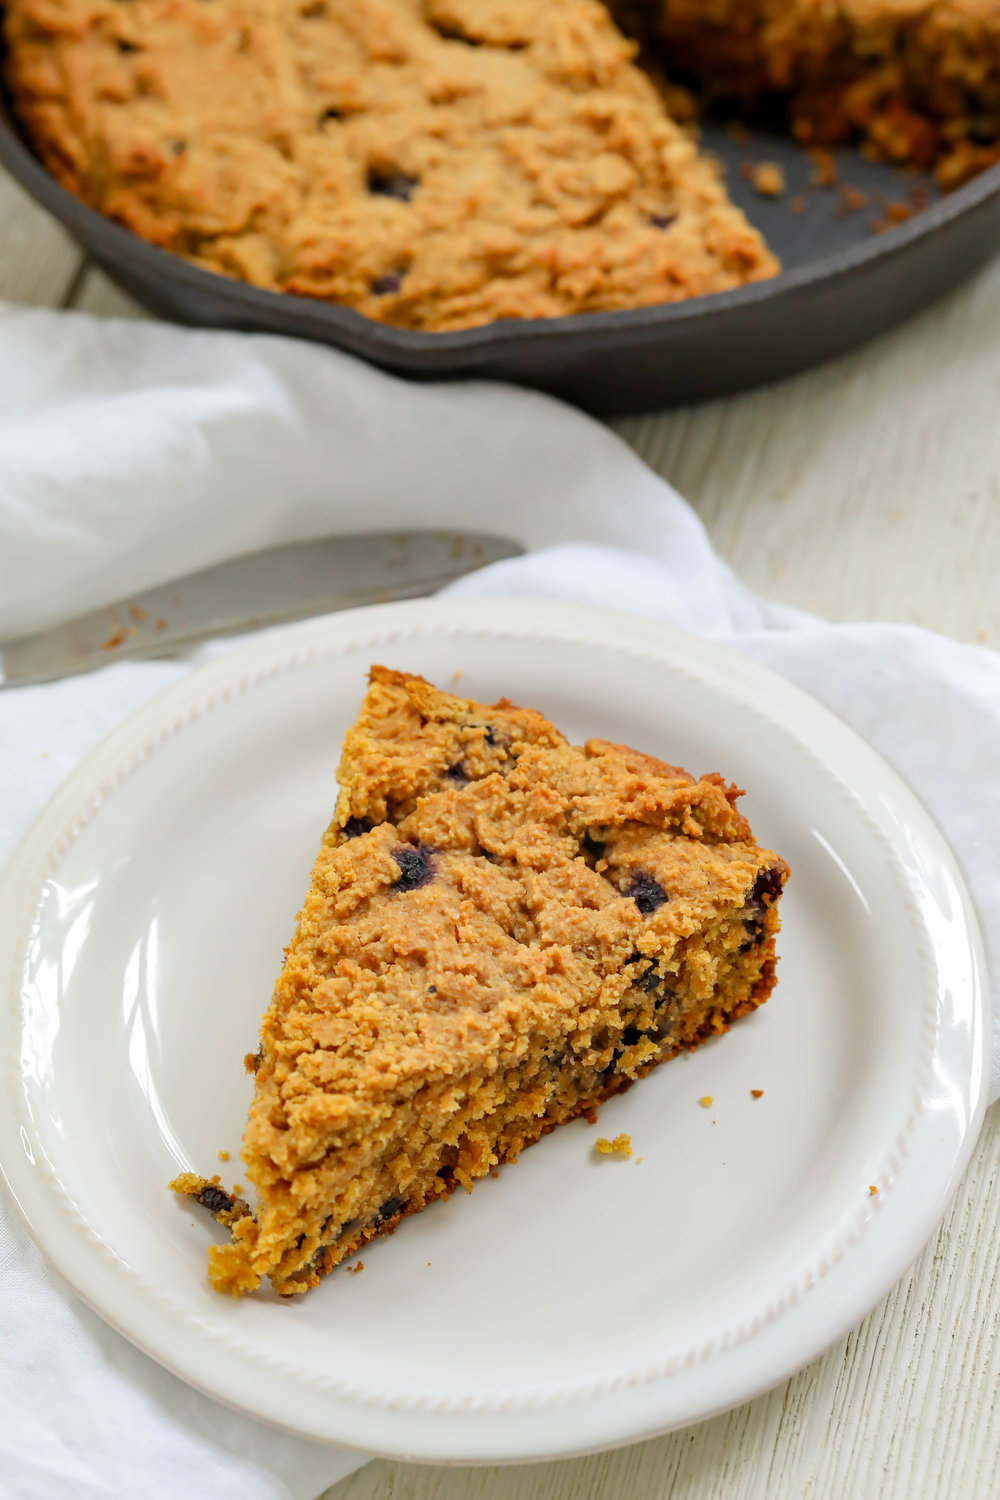 Grain-Free Blueberry Skillet Bread